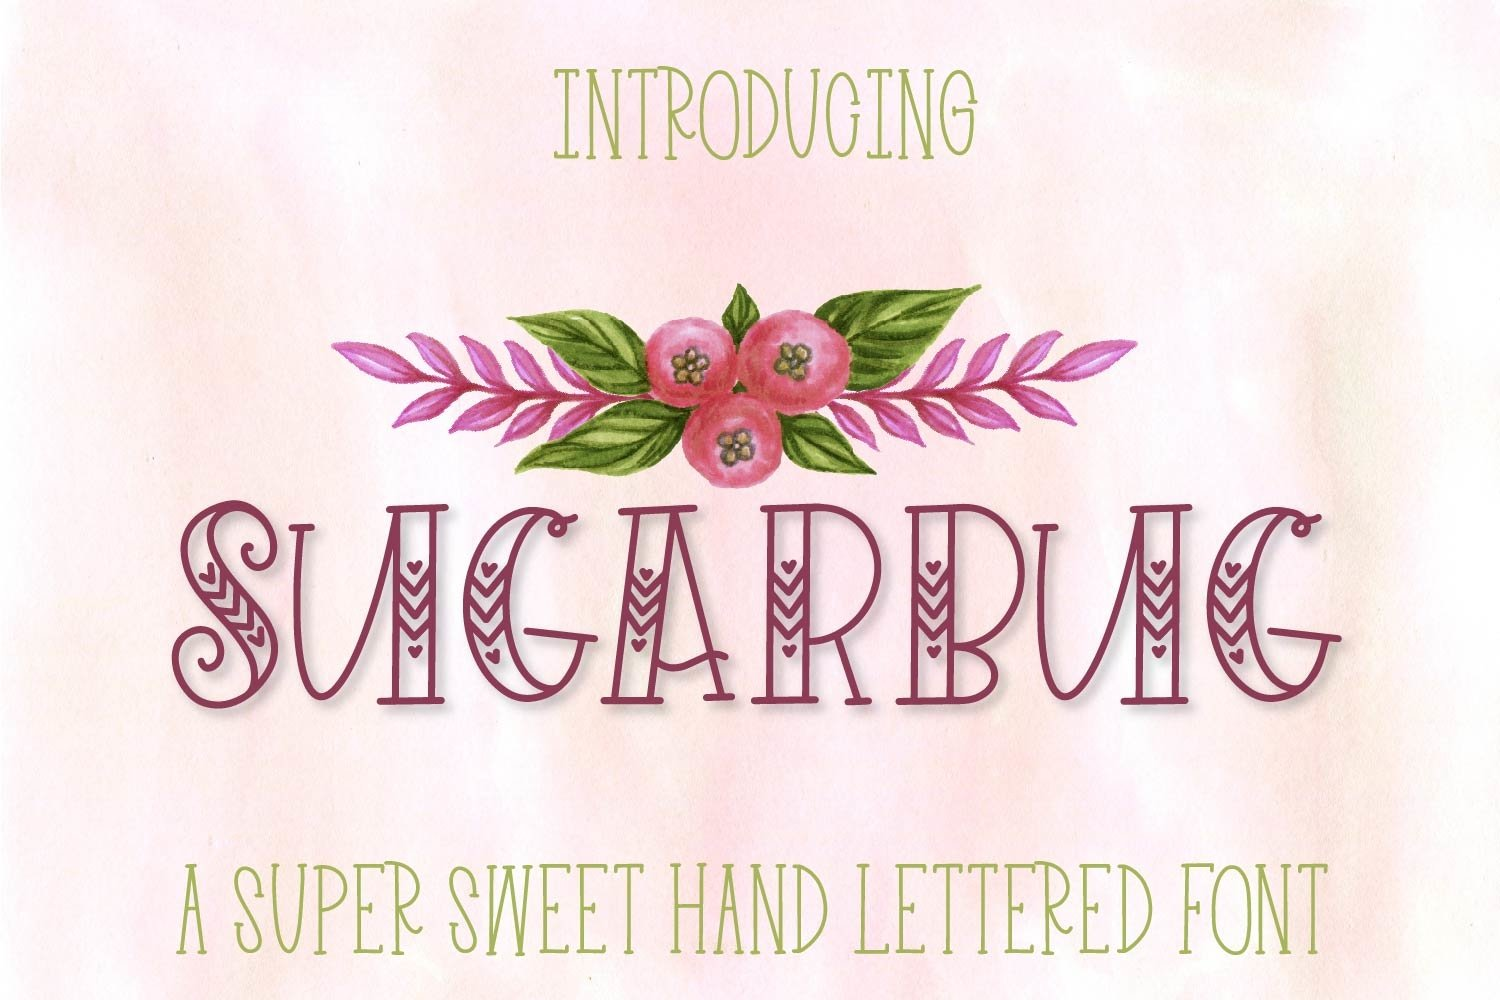 Sugarbug - A Hand Lettered Heart Font example image 1